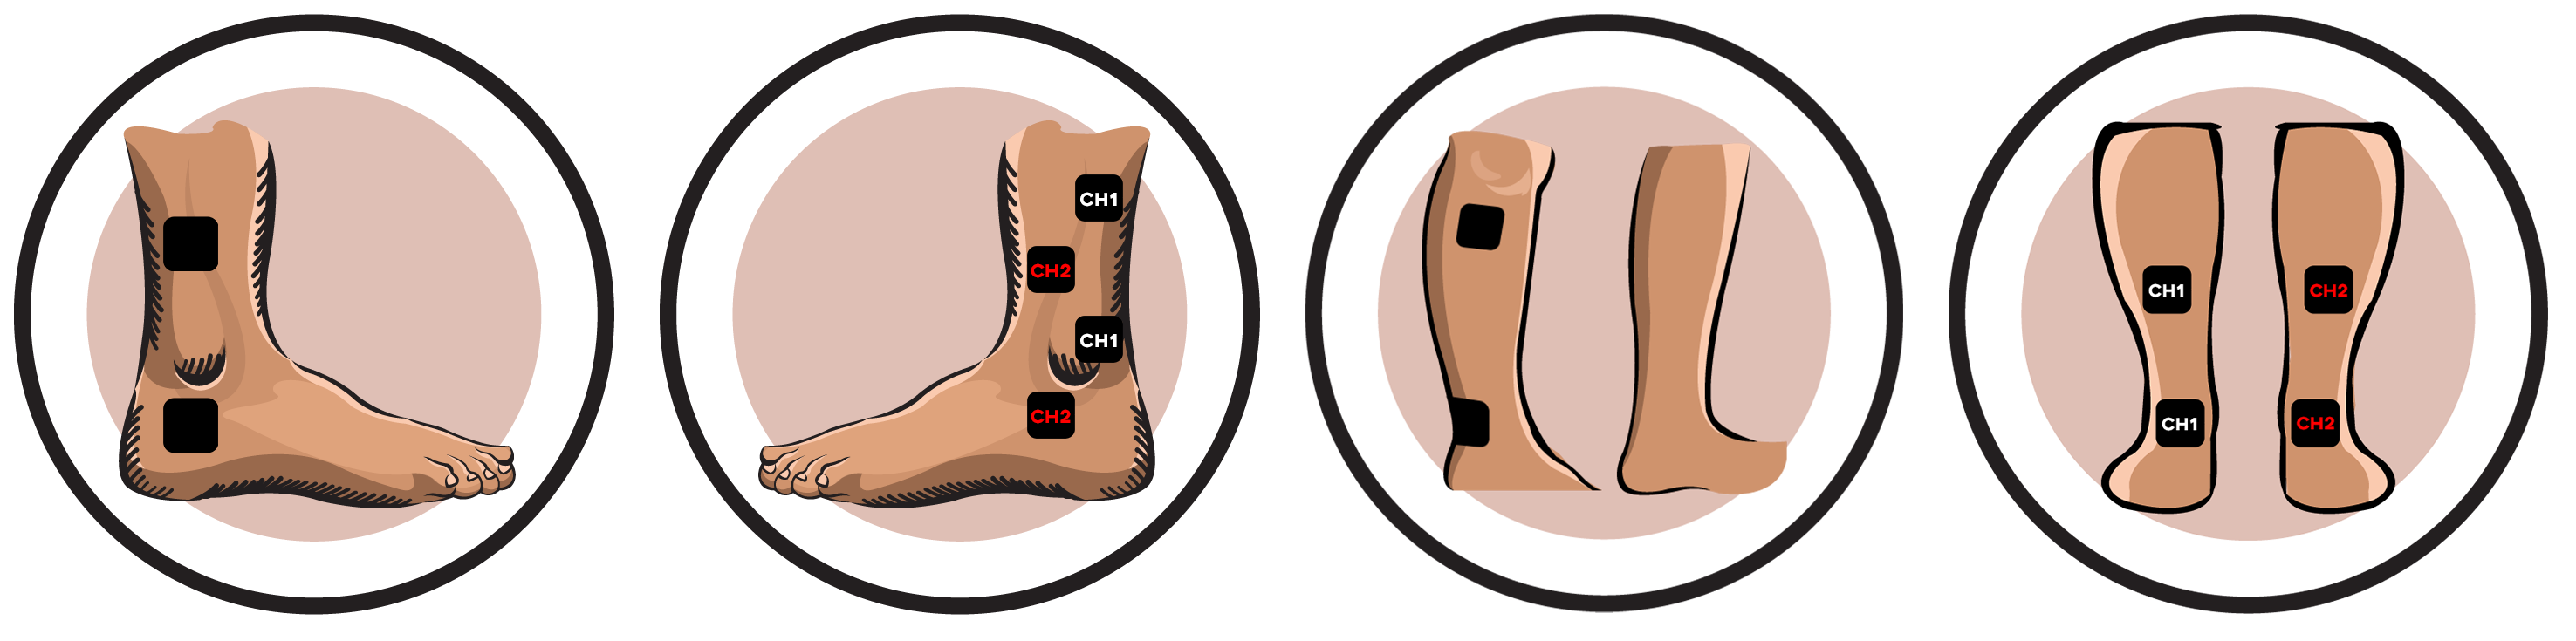 Electrode pad placement . Injury clipart sprained ankle